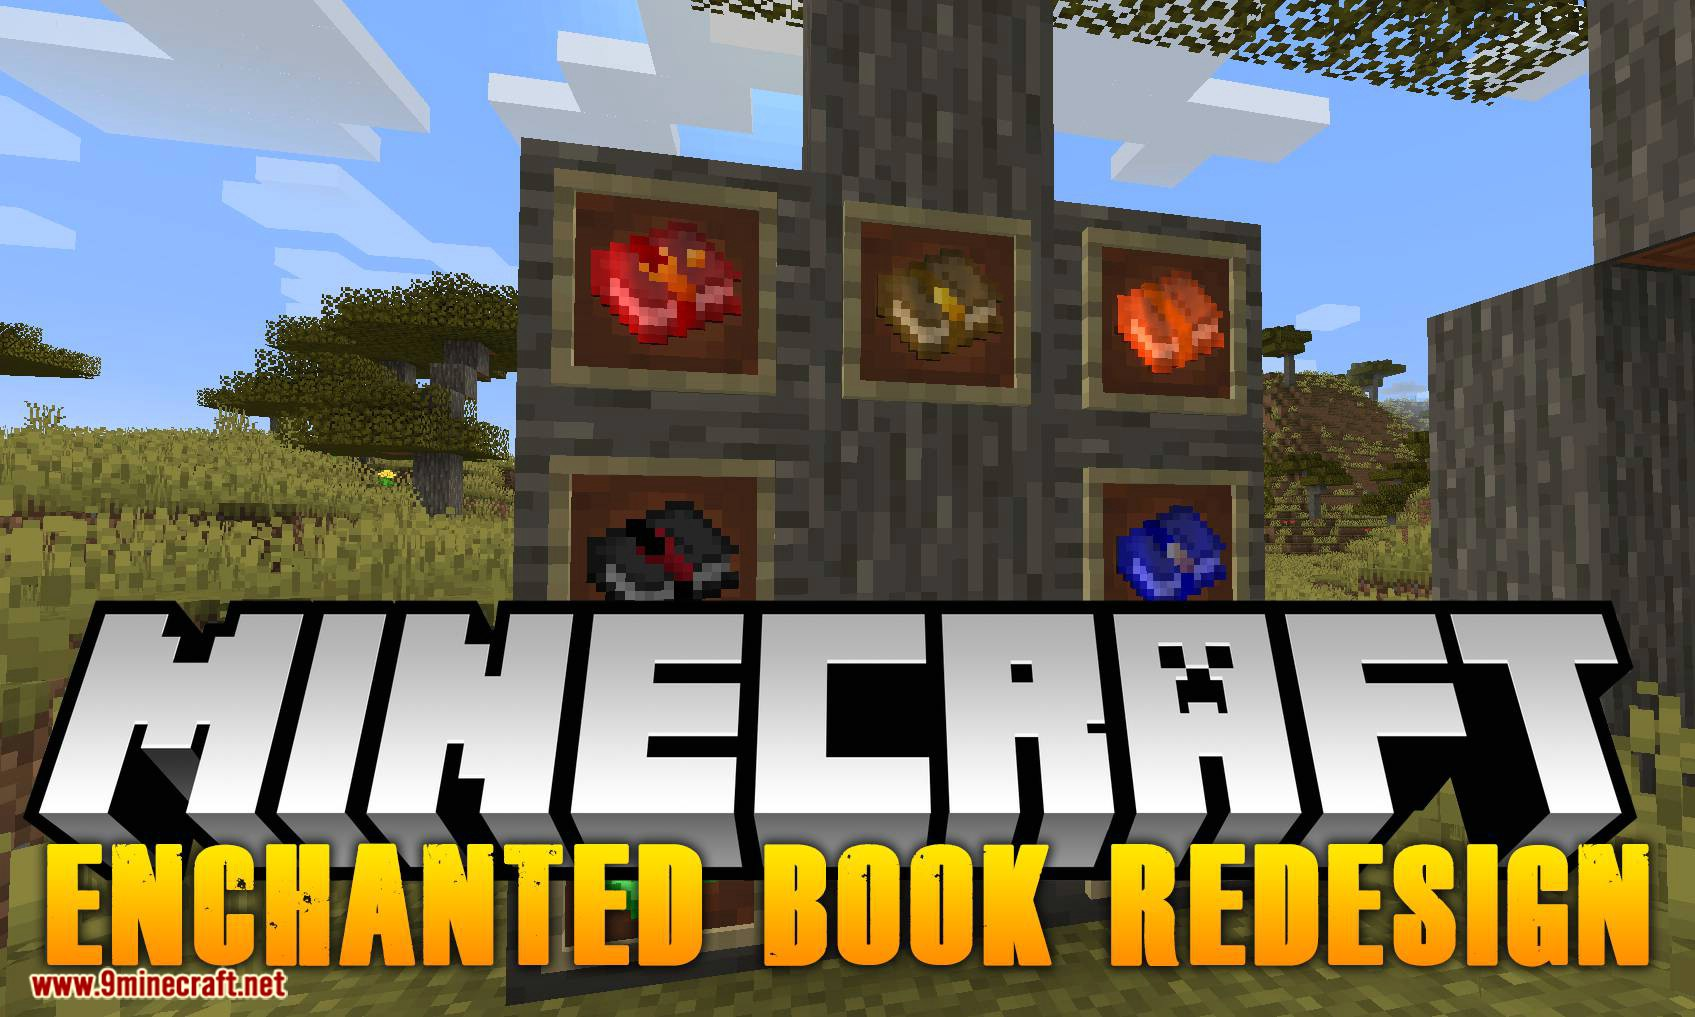 Enchanted Book Redesign mod for minecraft logo